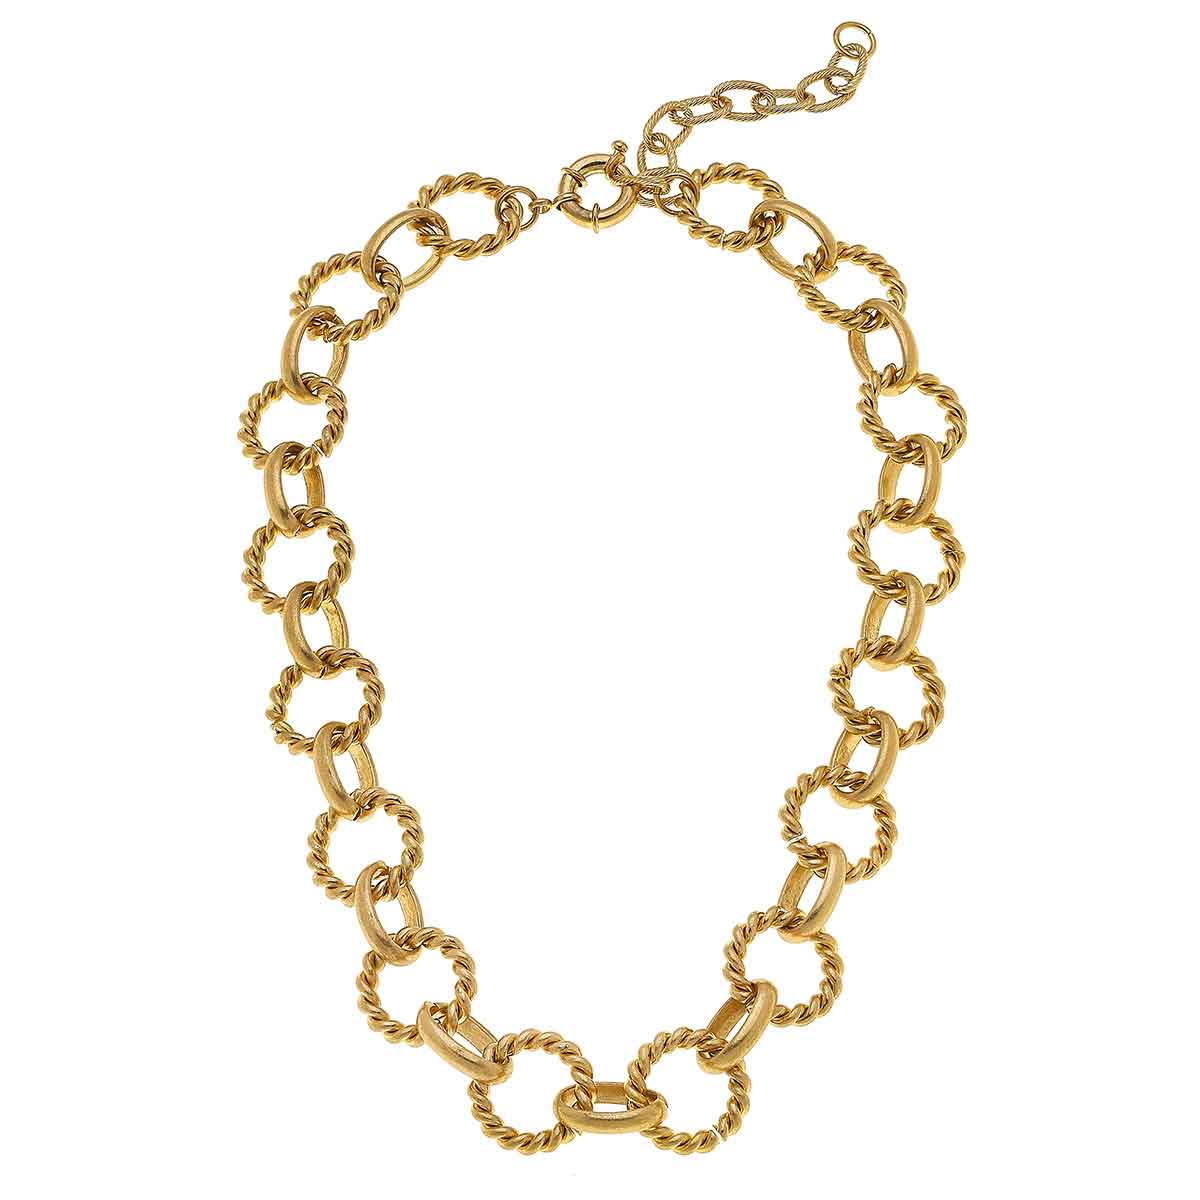 Angela Linked Rope Chain Necklace in Worn Gold